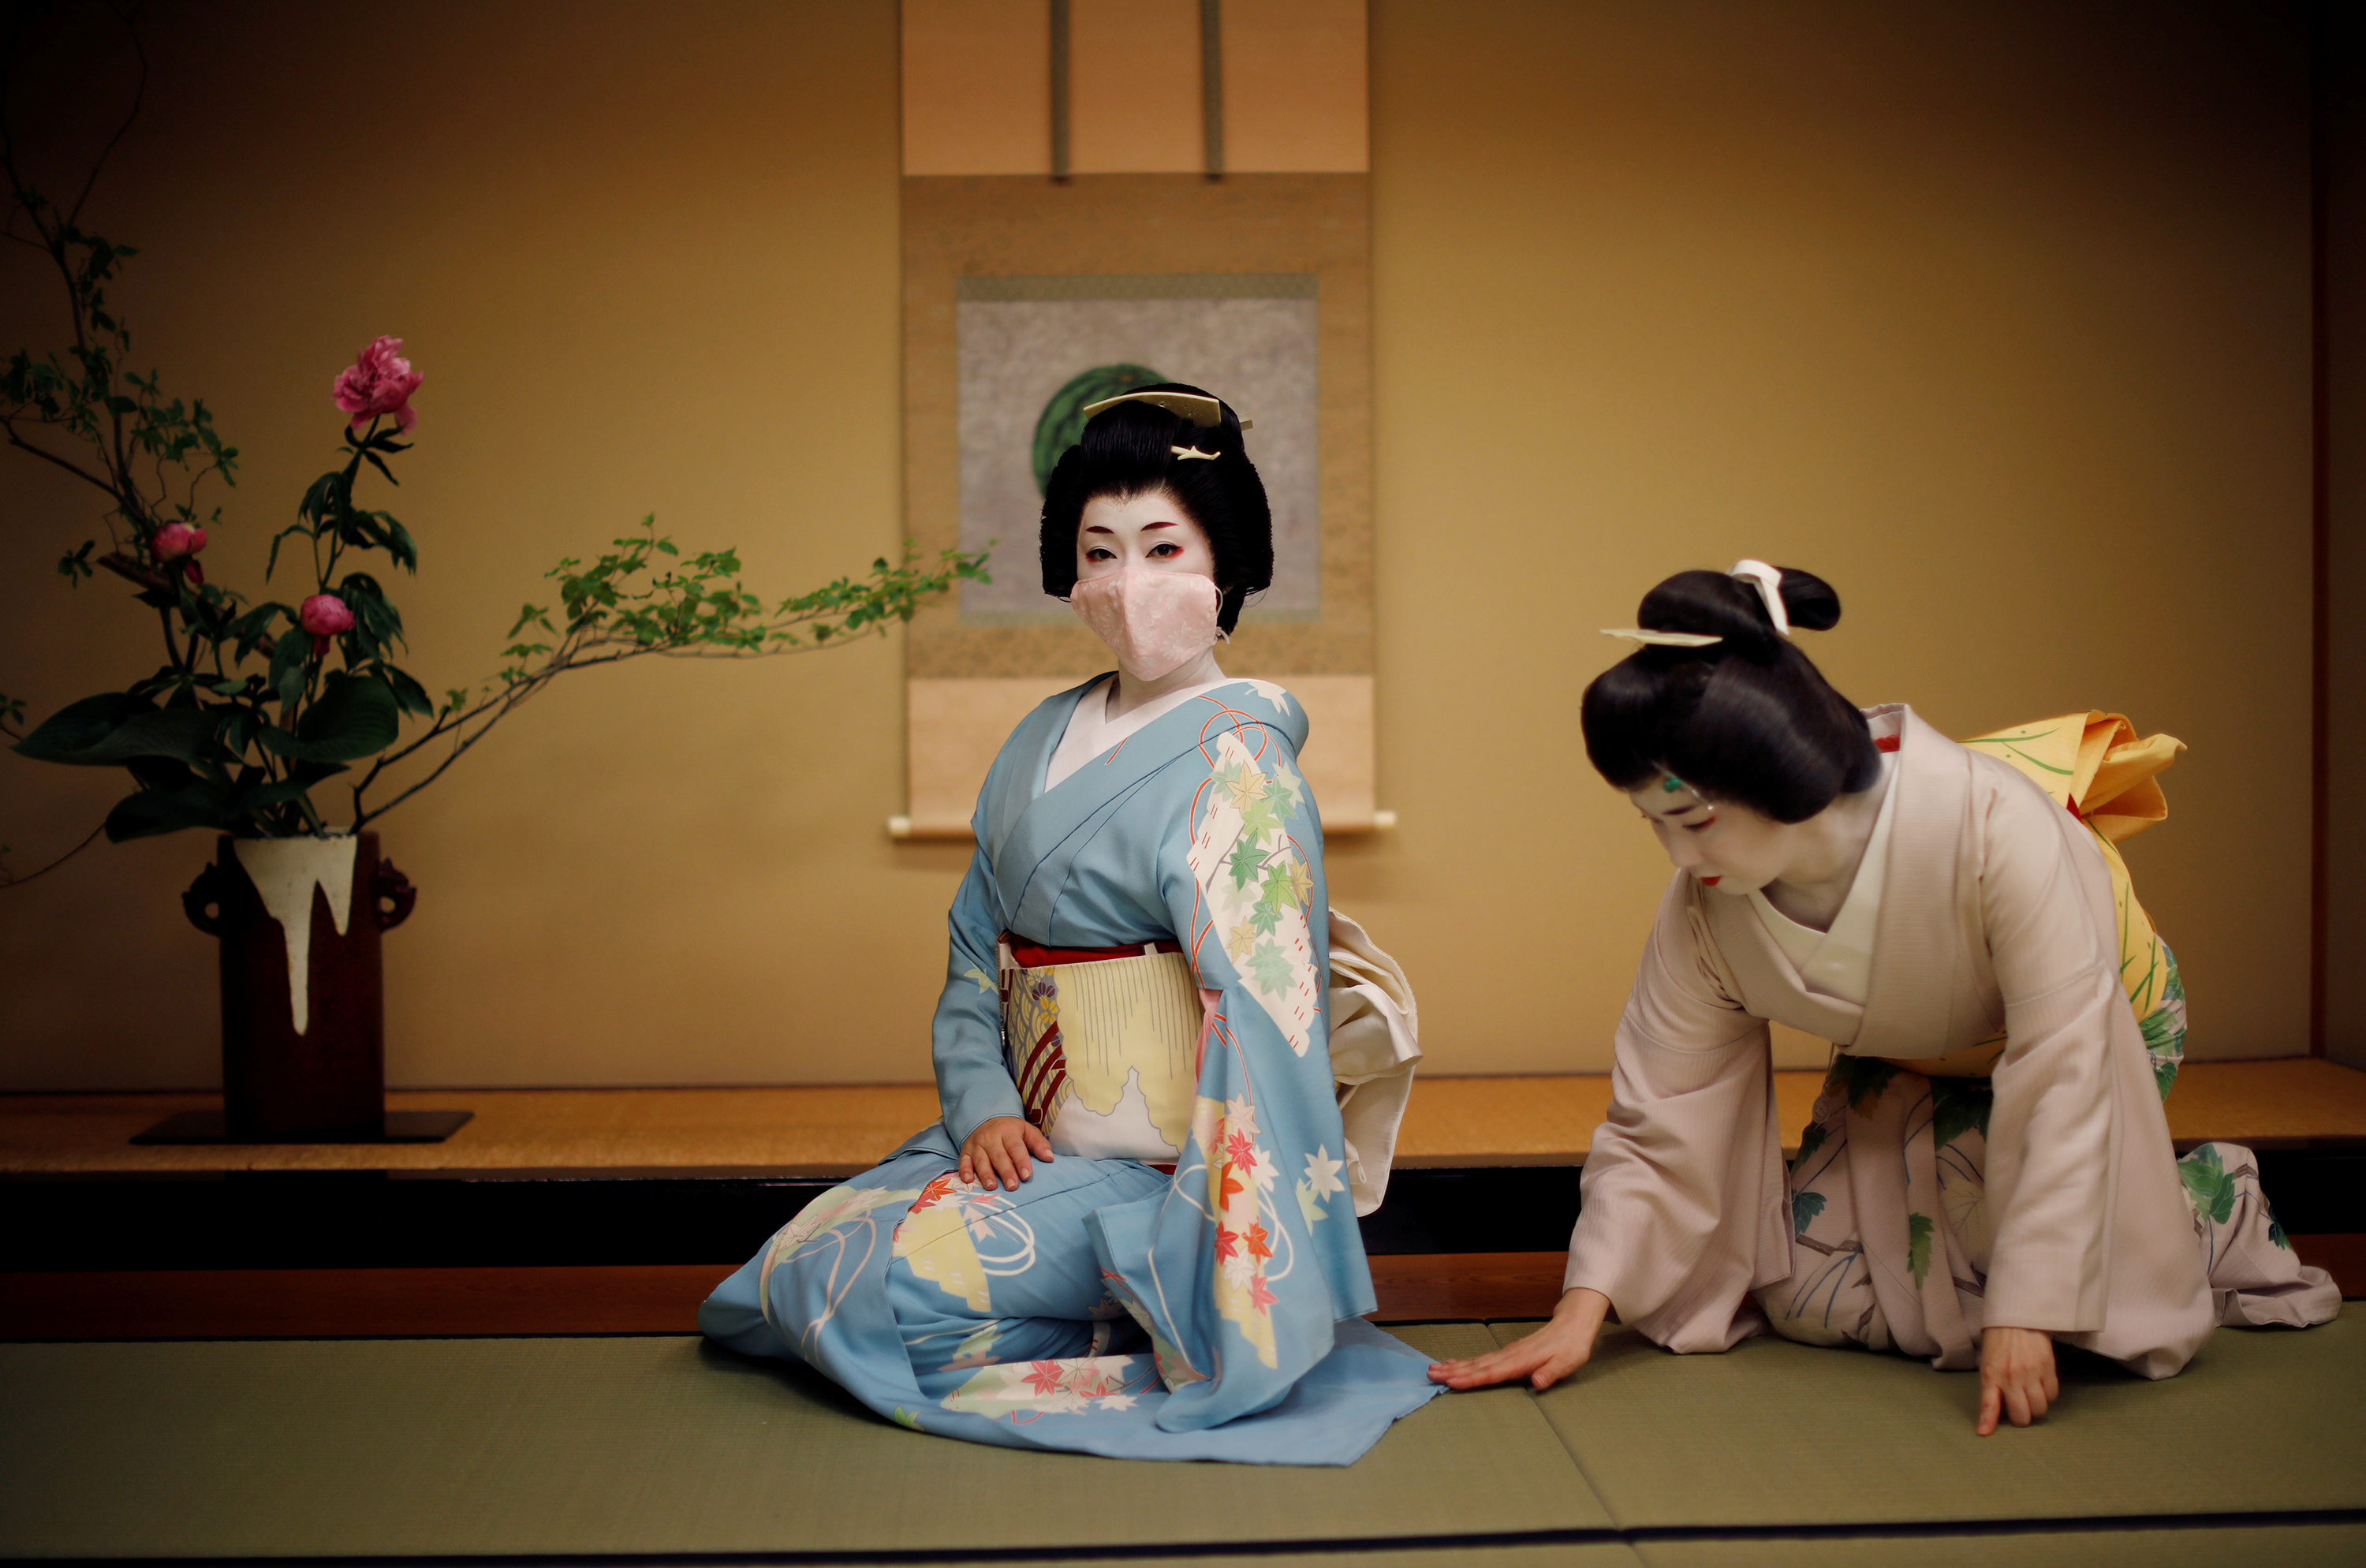 Mayu adjusts Koiku's kimono, both of who are geisha, as Koiku wears a protective face mask to pose for a photograph, before working at a party being hosted by customers, where they will entertain with other geisha, at Asada, a luxury Japanese restaurant, during the coronavirus (COVID-19) outbreak, in Tokyo, Japan, June 23, 2020.